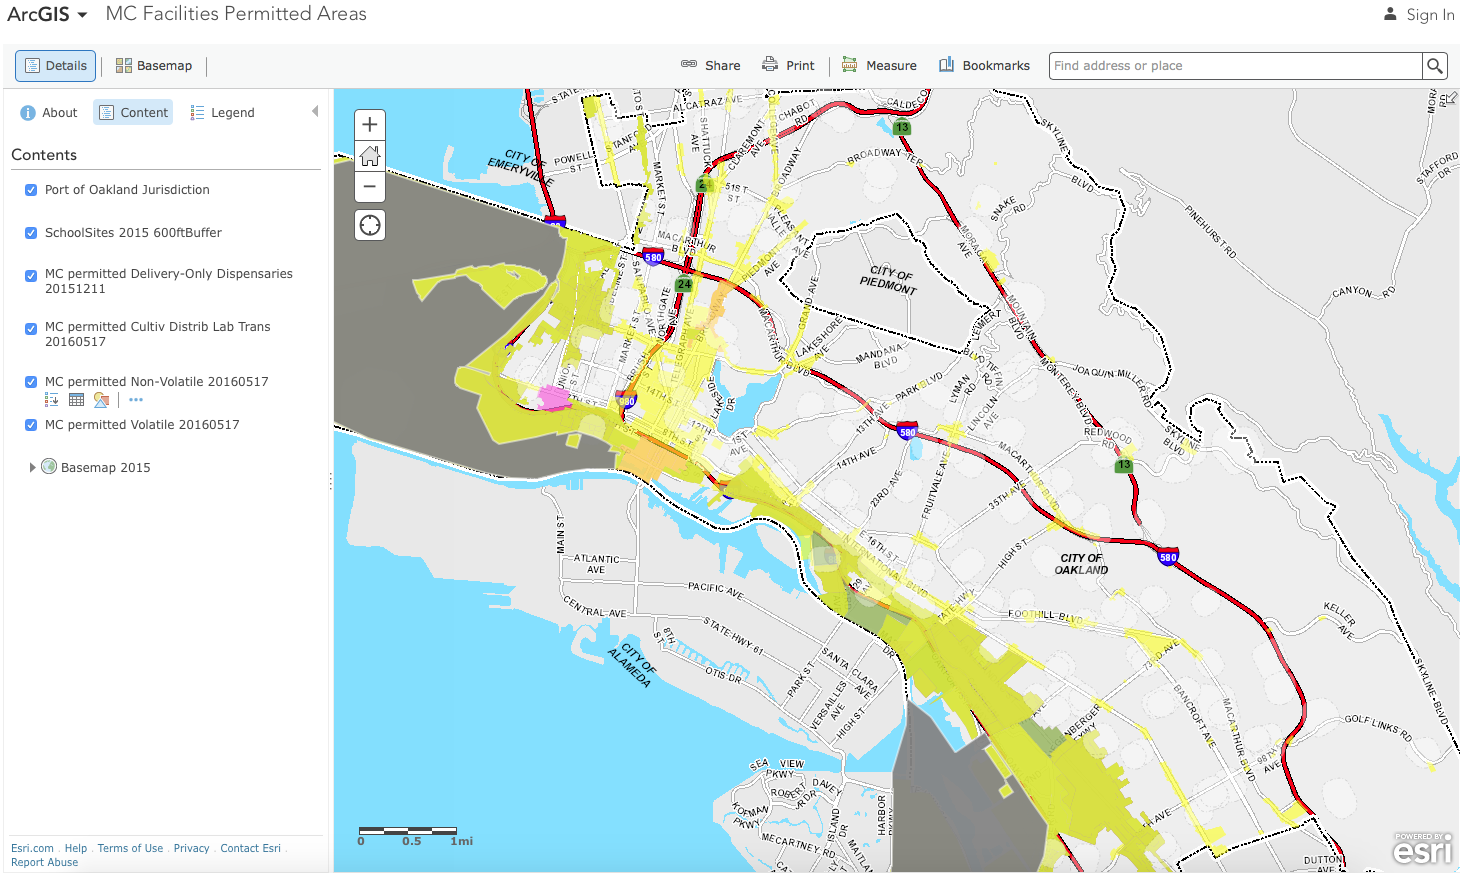 Oakland's Map to Permitted Legal Cannabis Locations — News ... on saginaw valley map, san francisco area map, woodlawn park map, sacramento map, jack london square map, san diego map, outer sunset map, st. louis map, concord map, summit view map, half moon bay map, shady lake map, alameda county map, fryeburg map, san jose map, bay bridge map, eureka map, seattle map, bay area map, florida map,